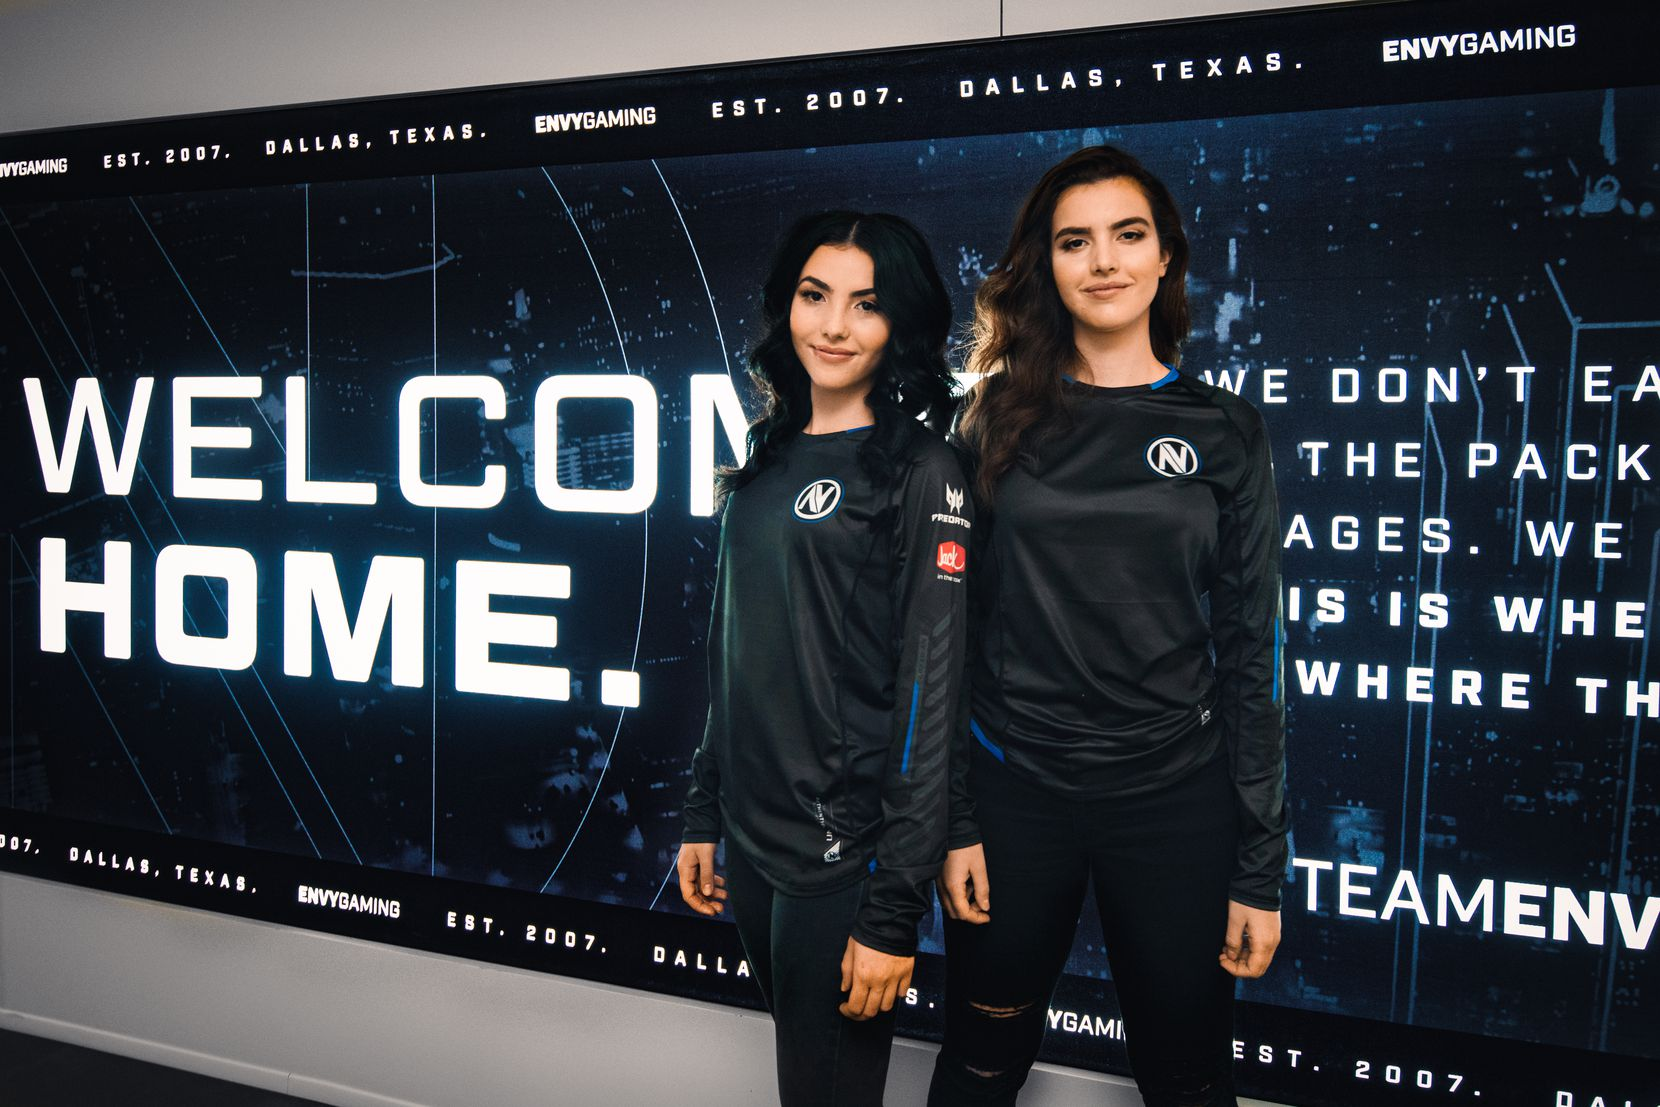 Andrea Botez, left, and Alexandra Botez recently signed with Envy Gaming as content creators for the Dallas-based esports organization.